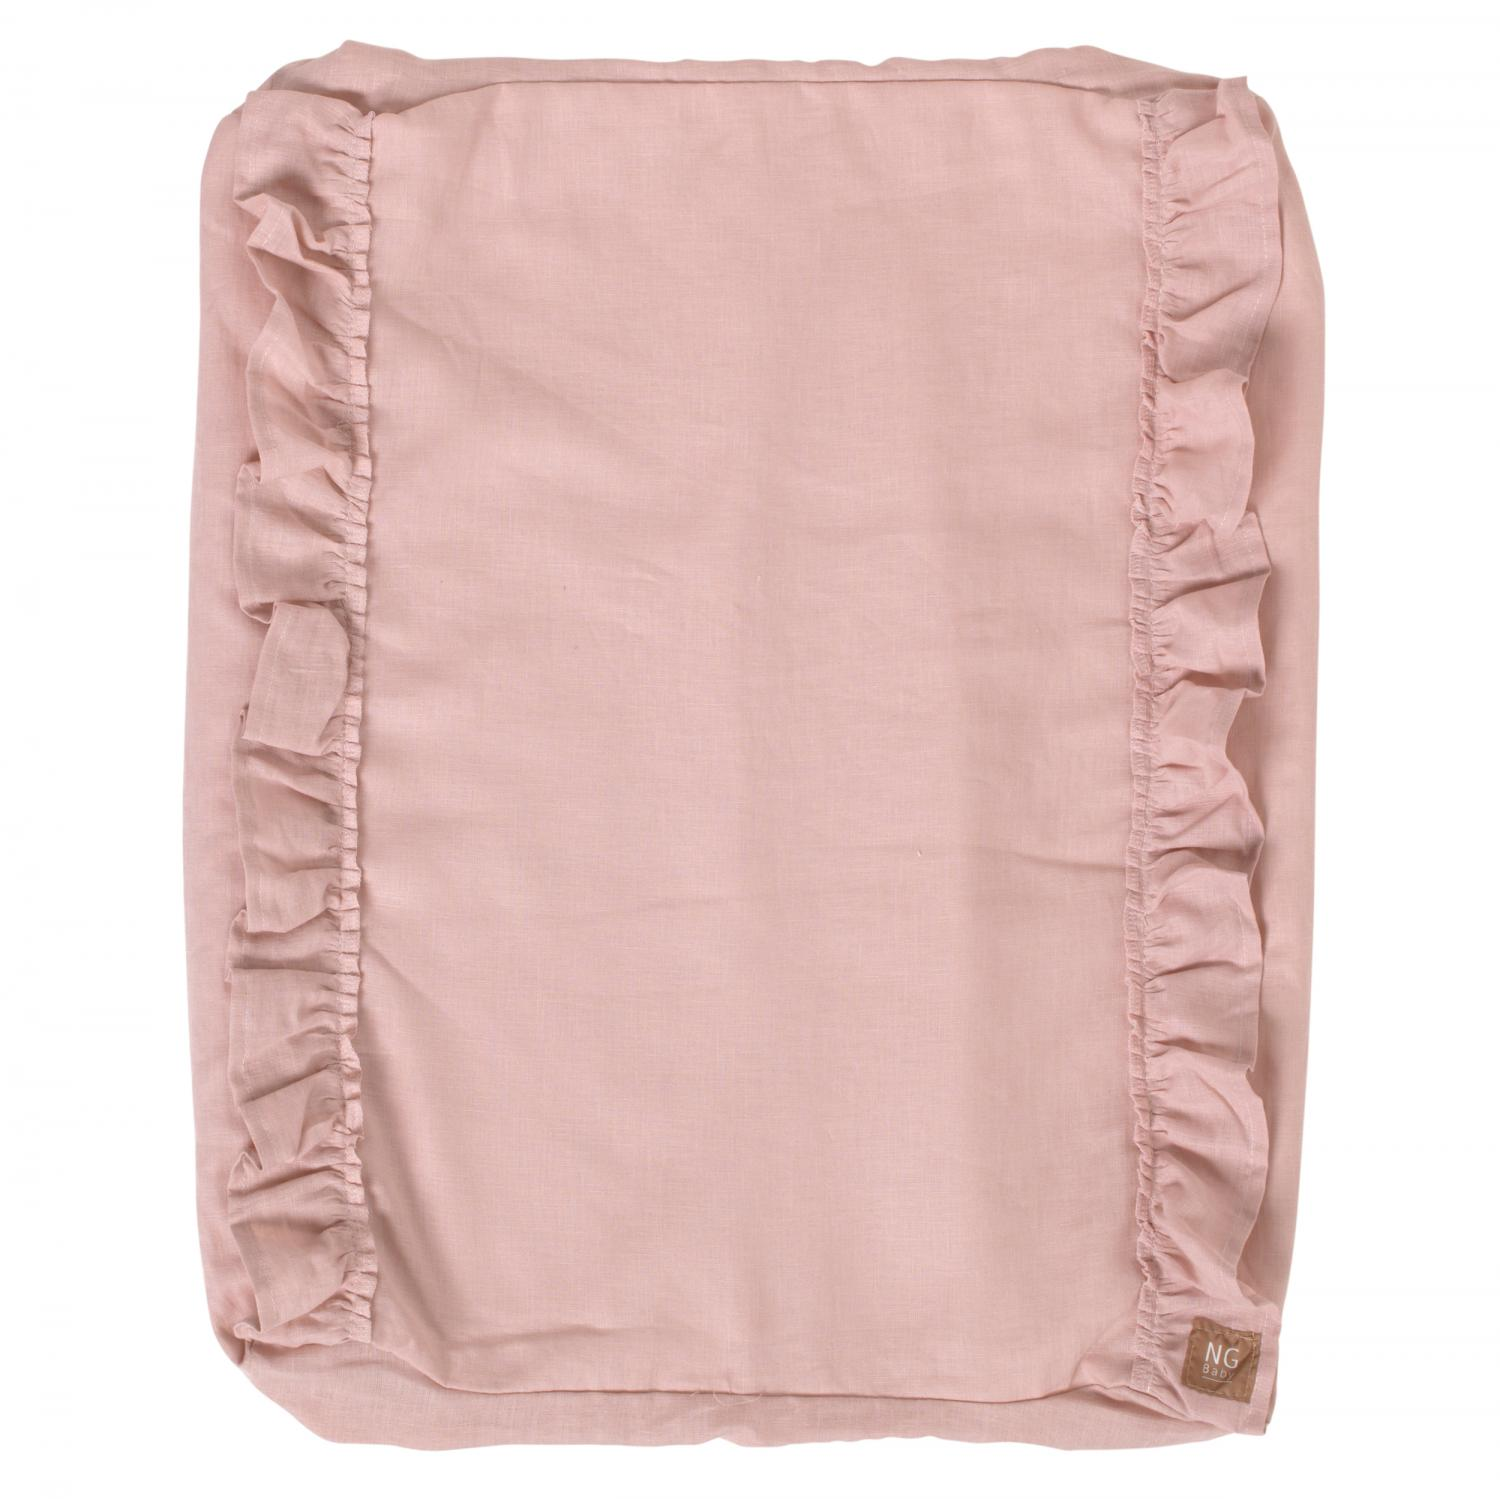 Changing pad ruffle cover | Rose | Mood ruffles